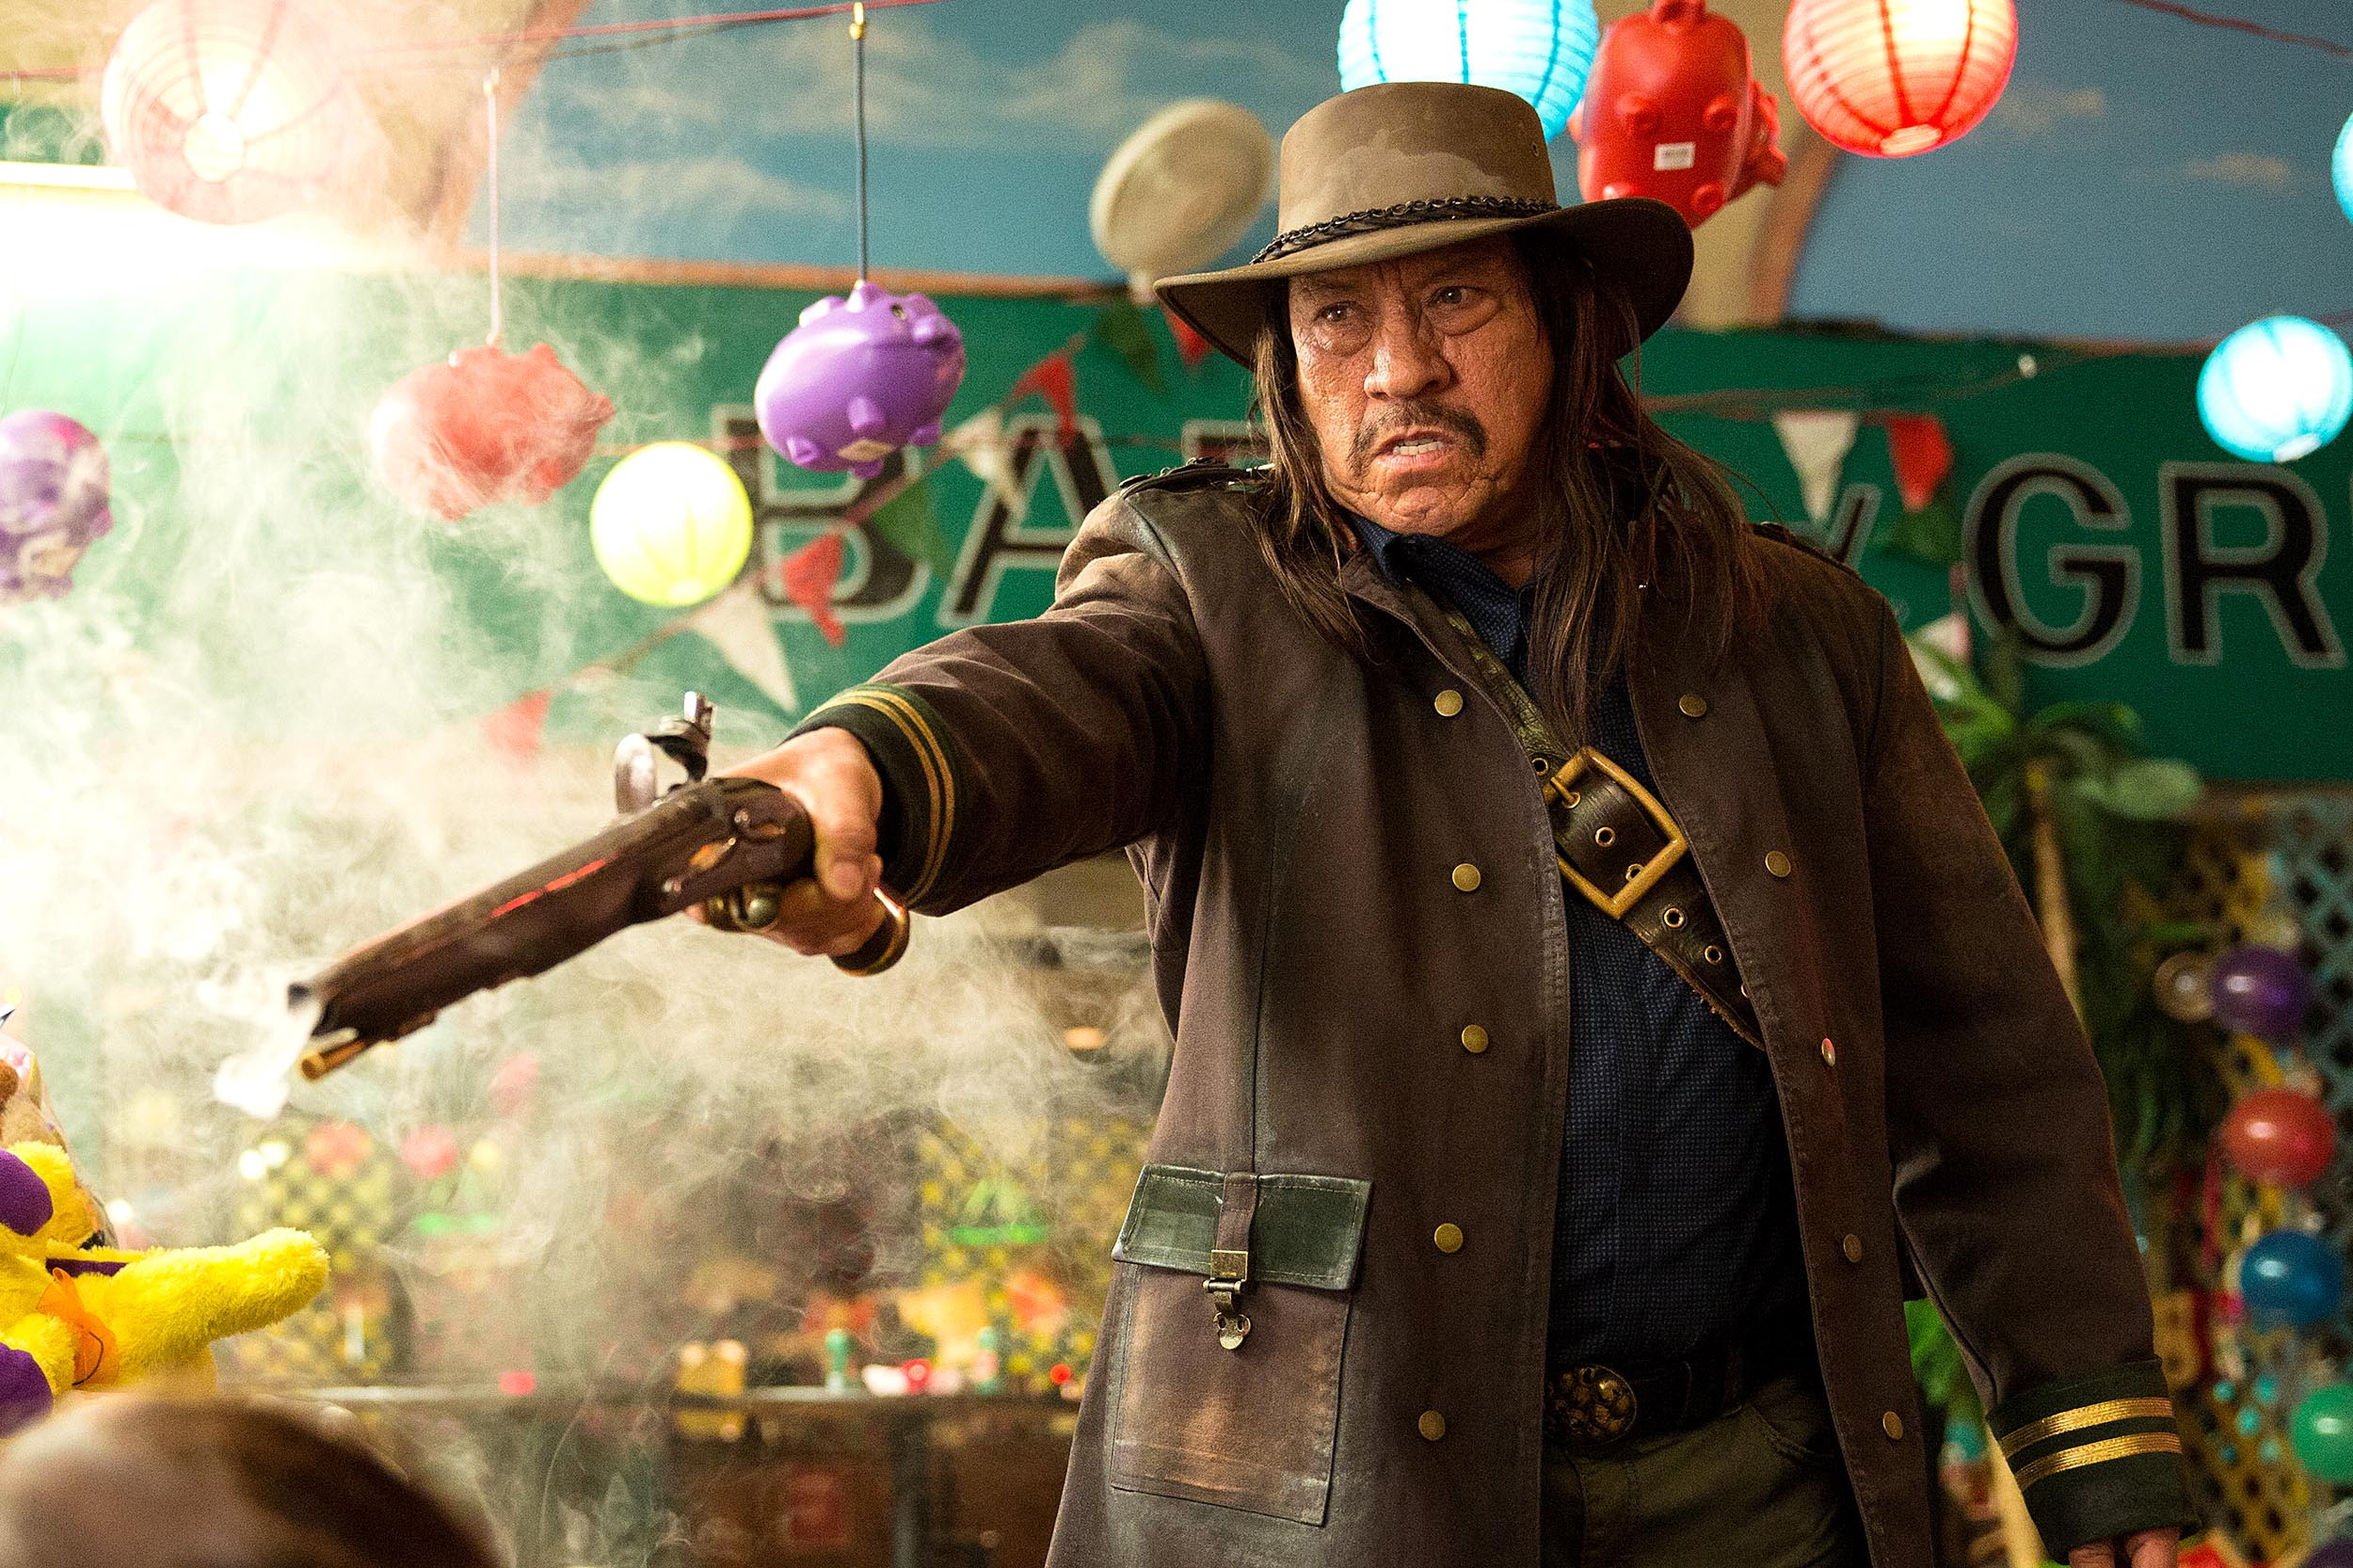 Danny Trejo in From Dusk Till Dawn